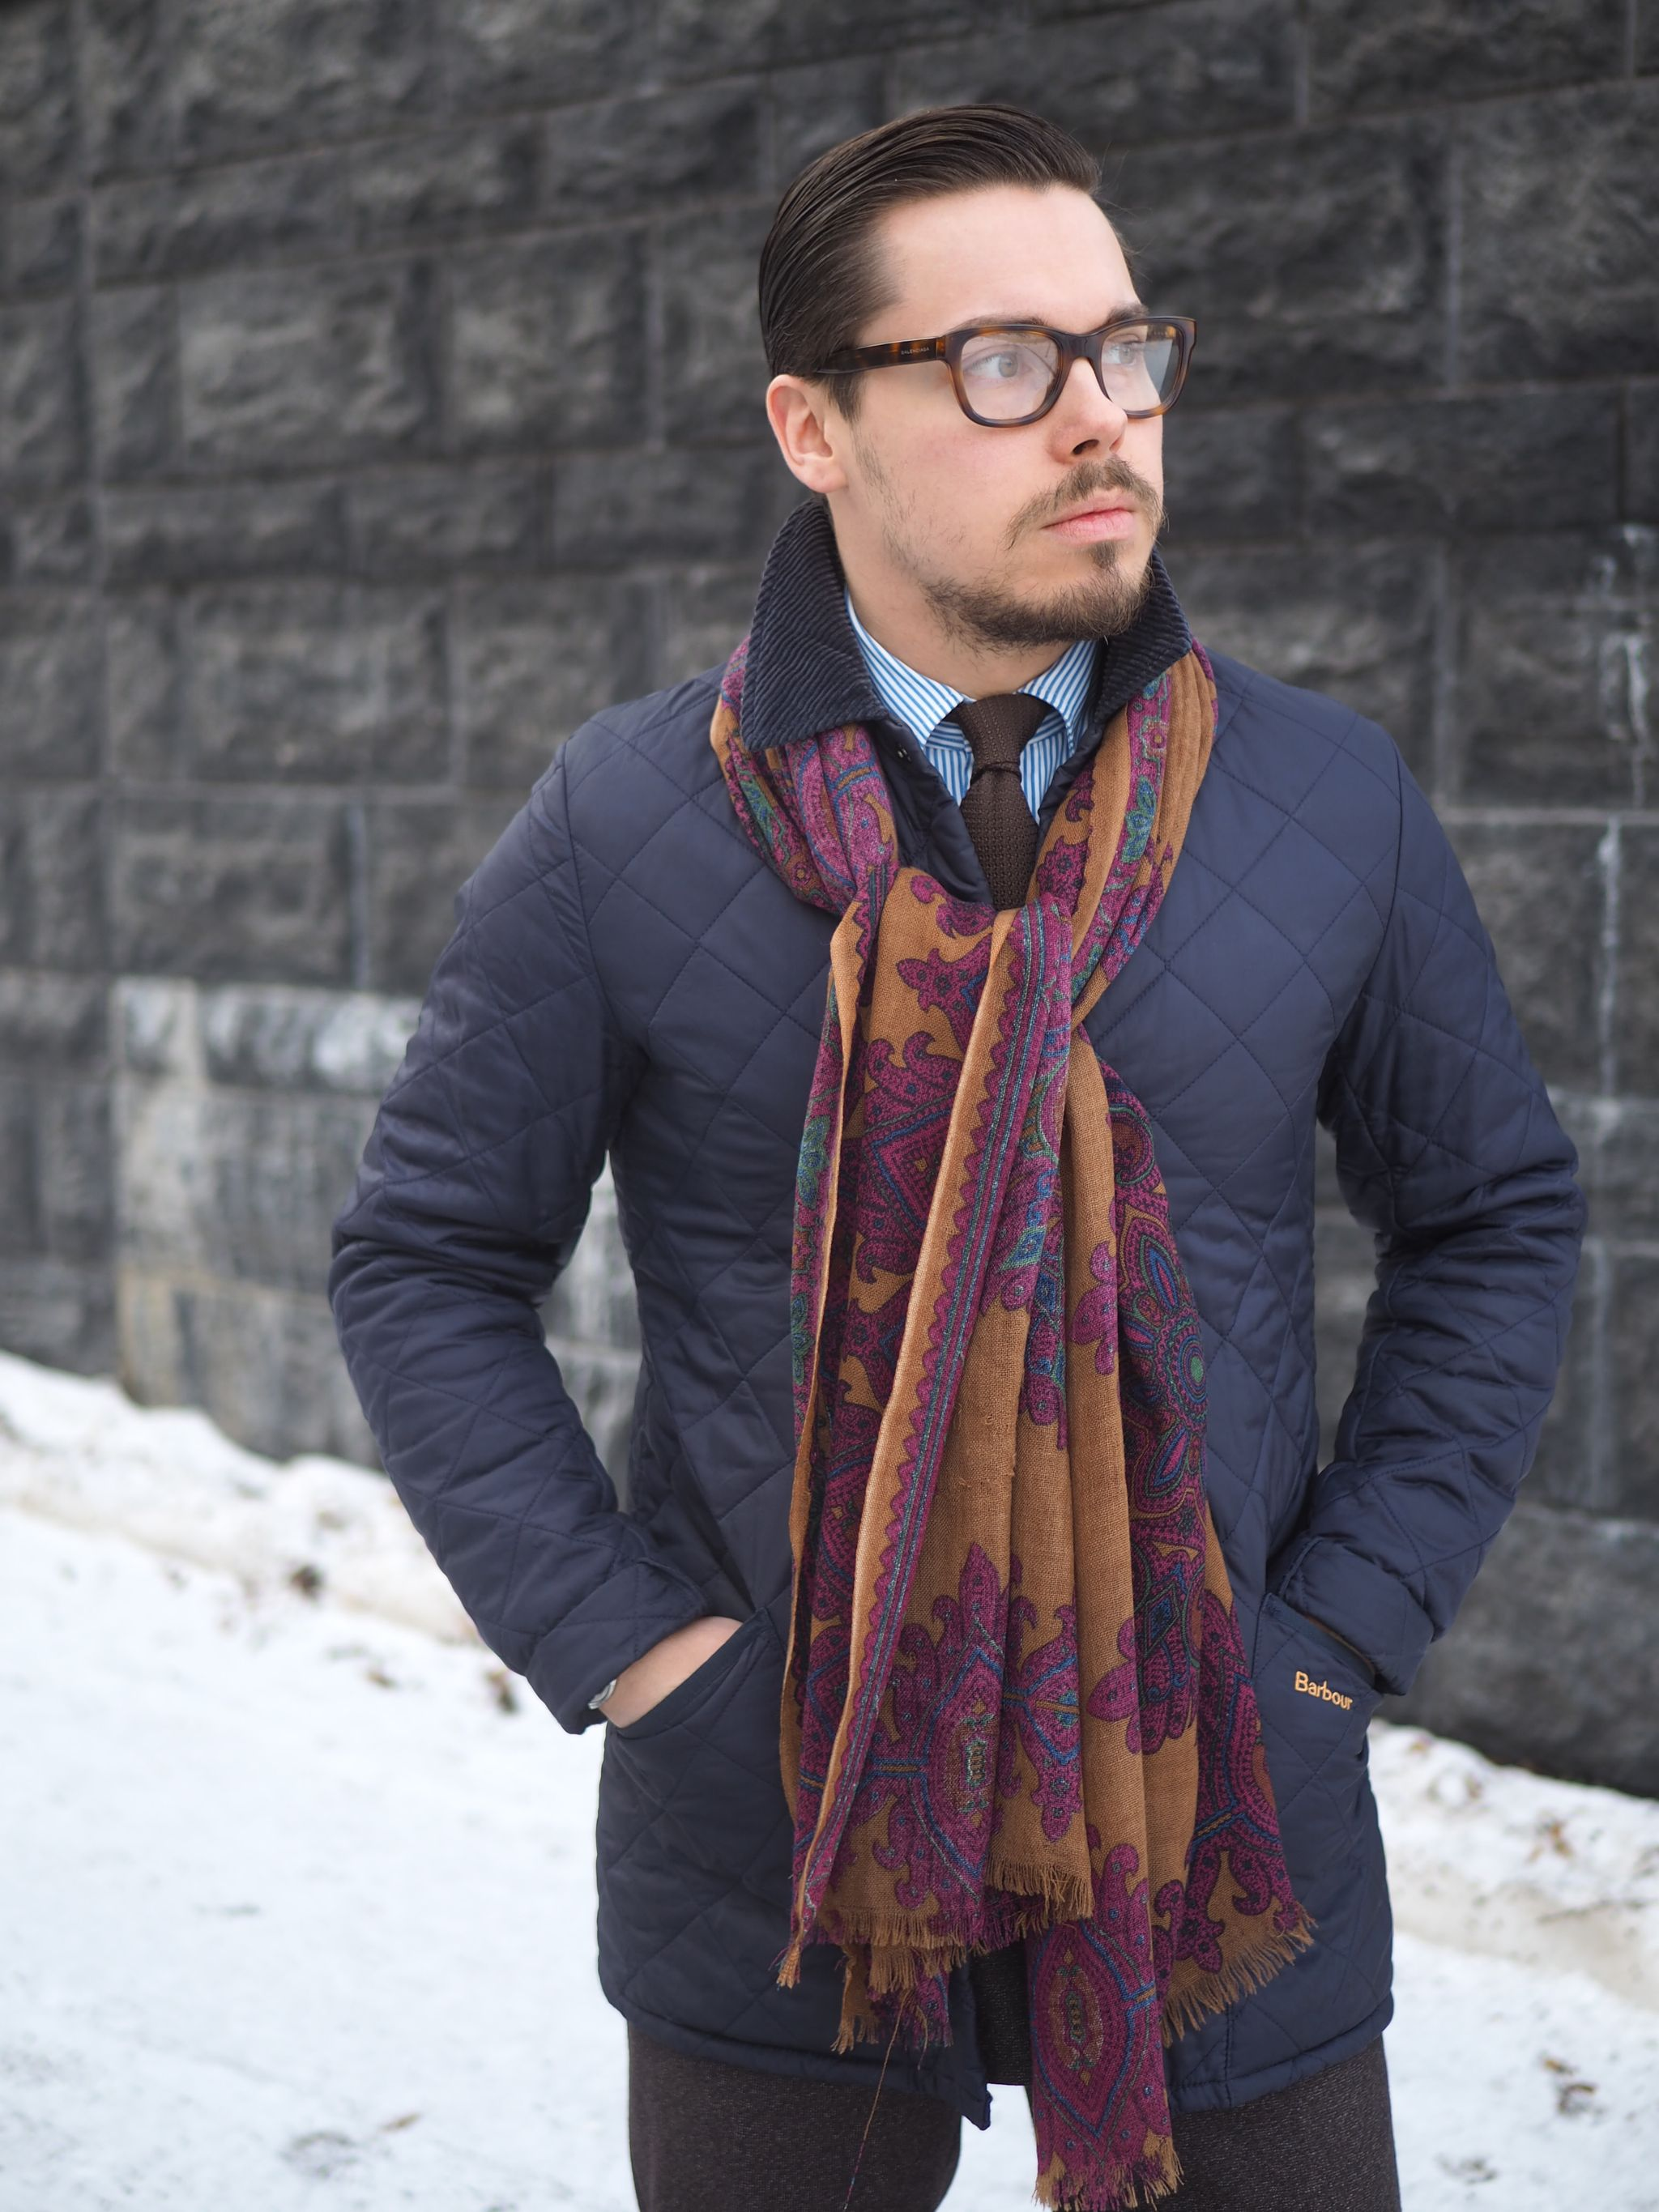 Barbour quilted jacket and wool scarf with the brown suit.